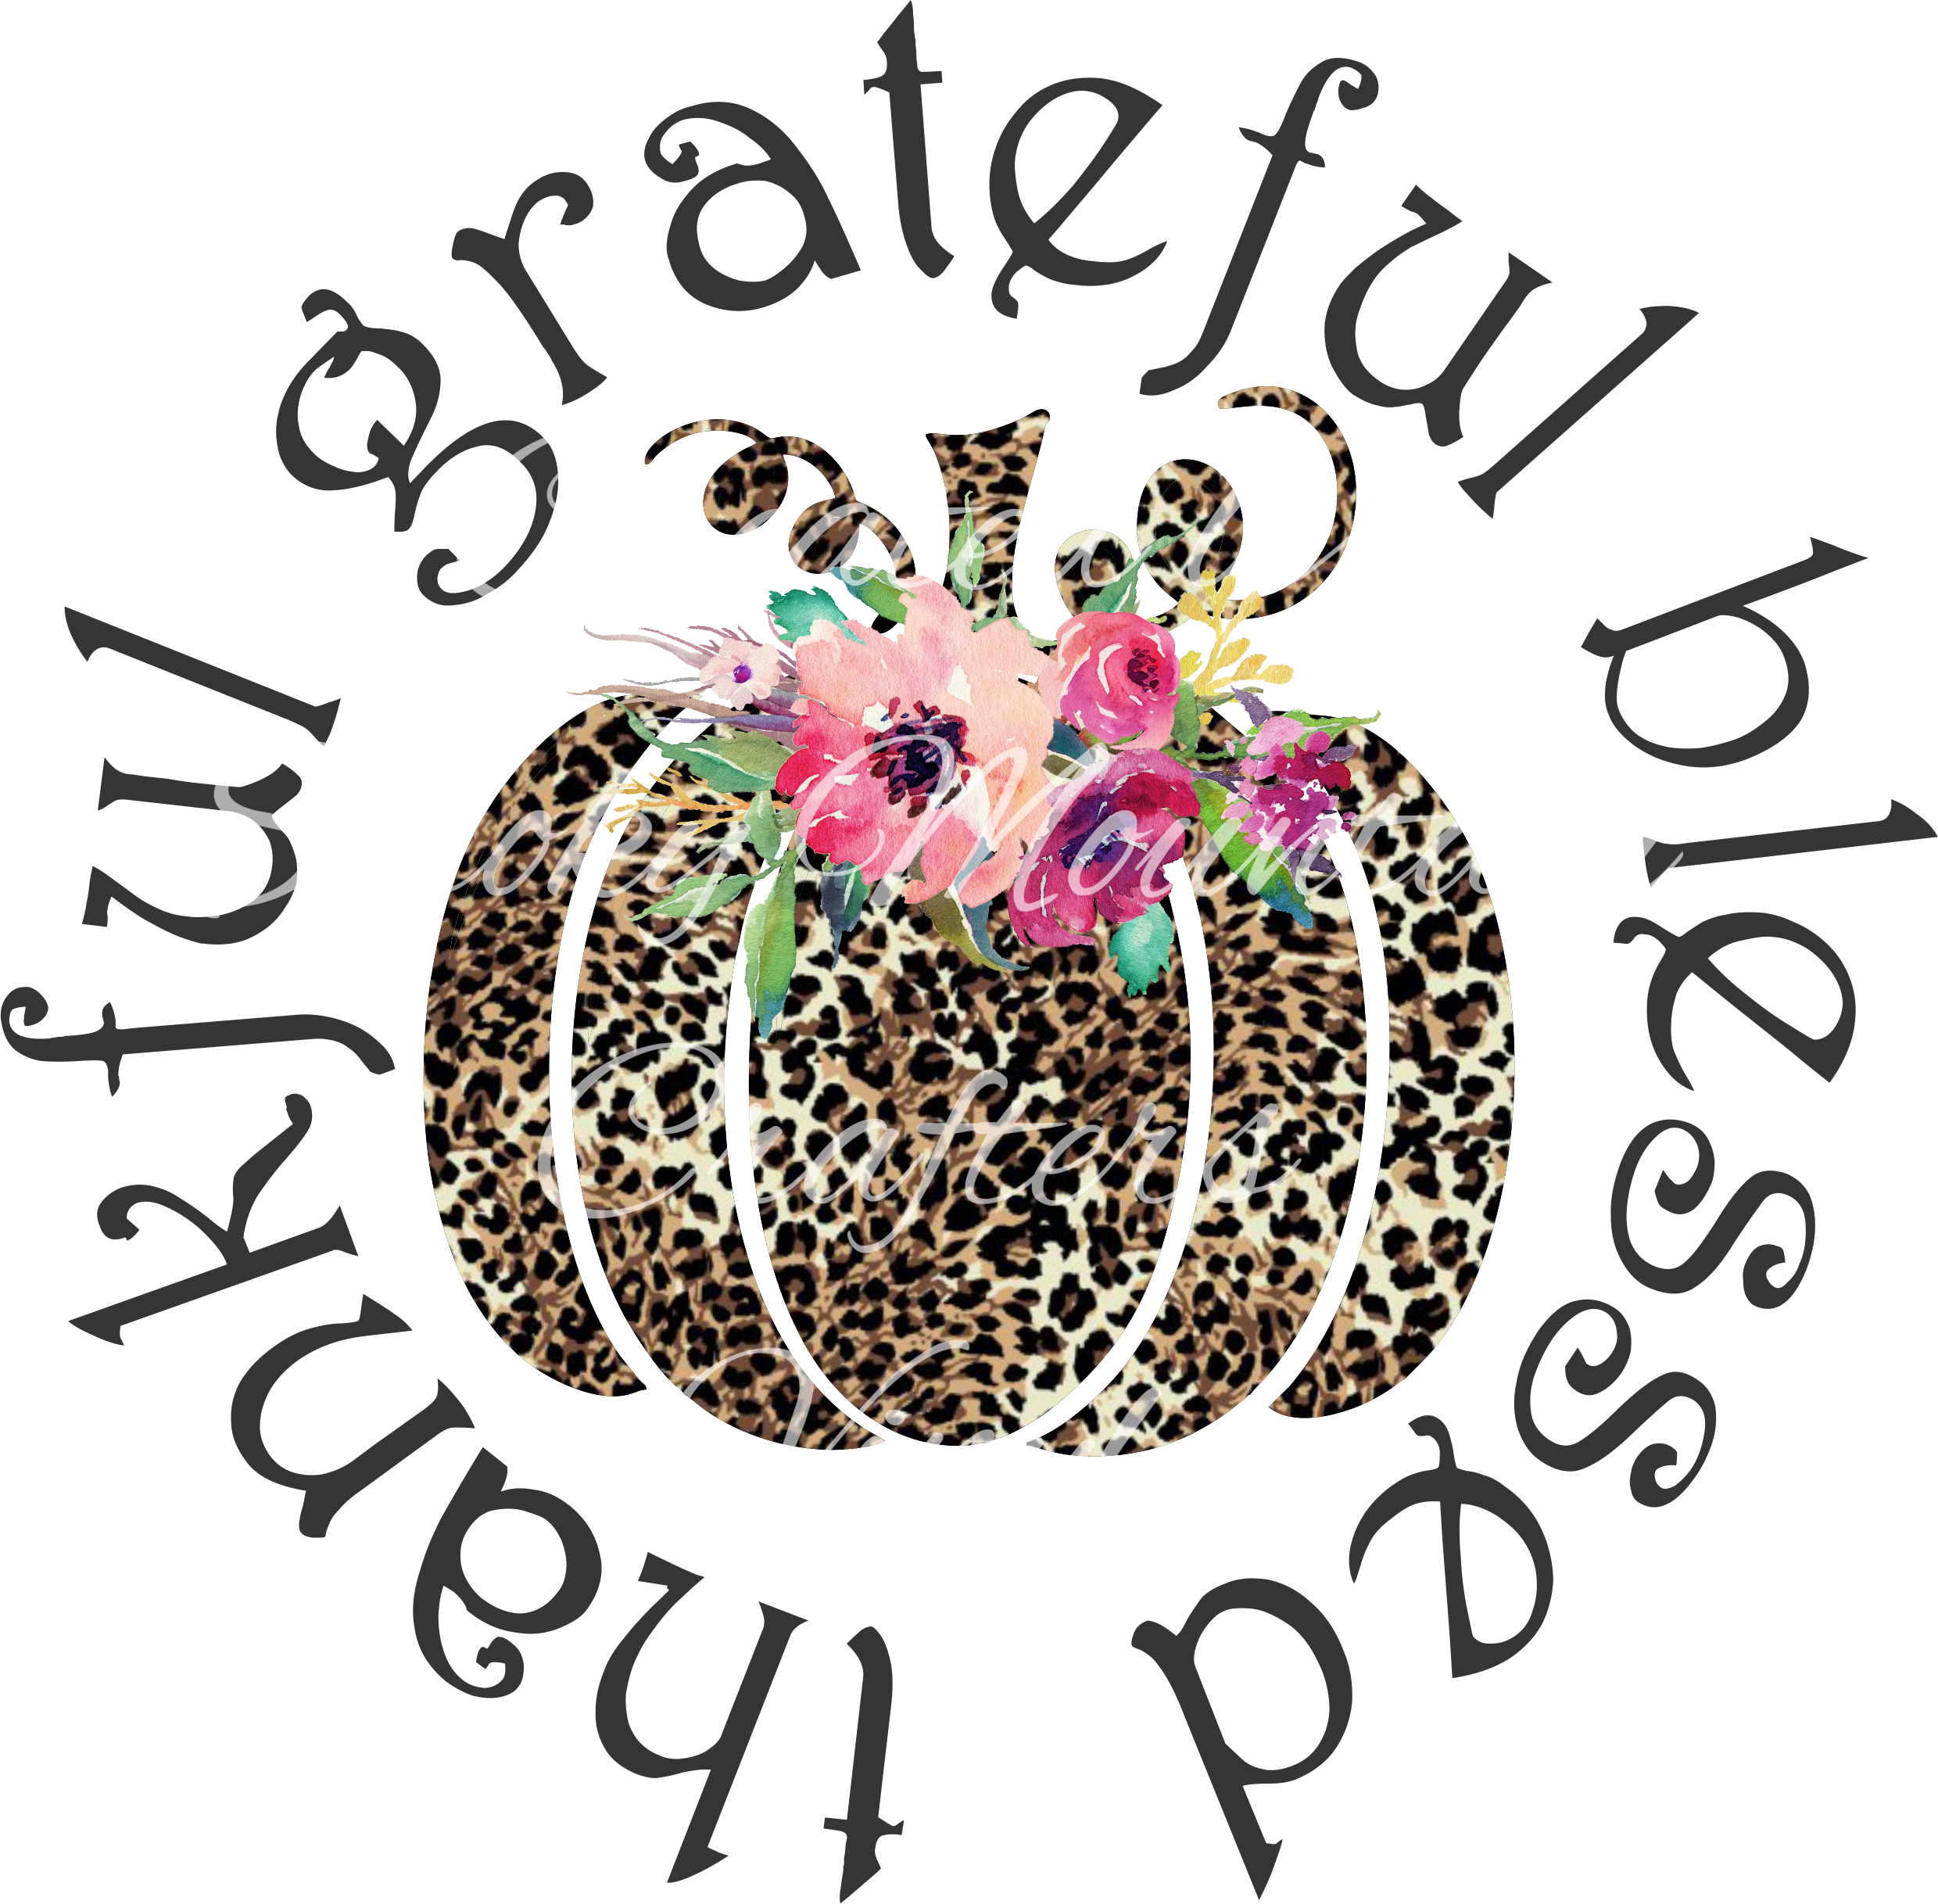 Thankful Grateful And Blessed, PNG, Sublimation Design